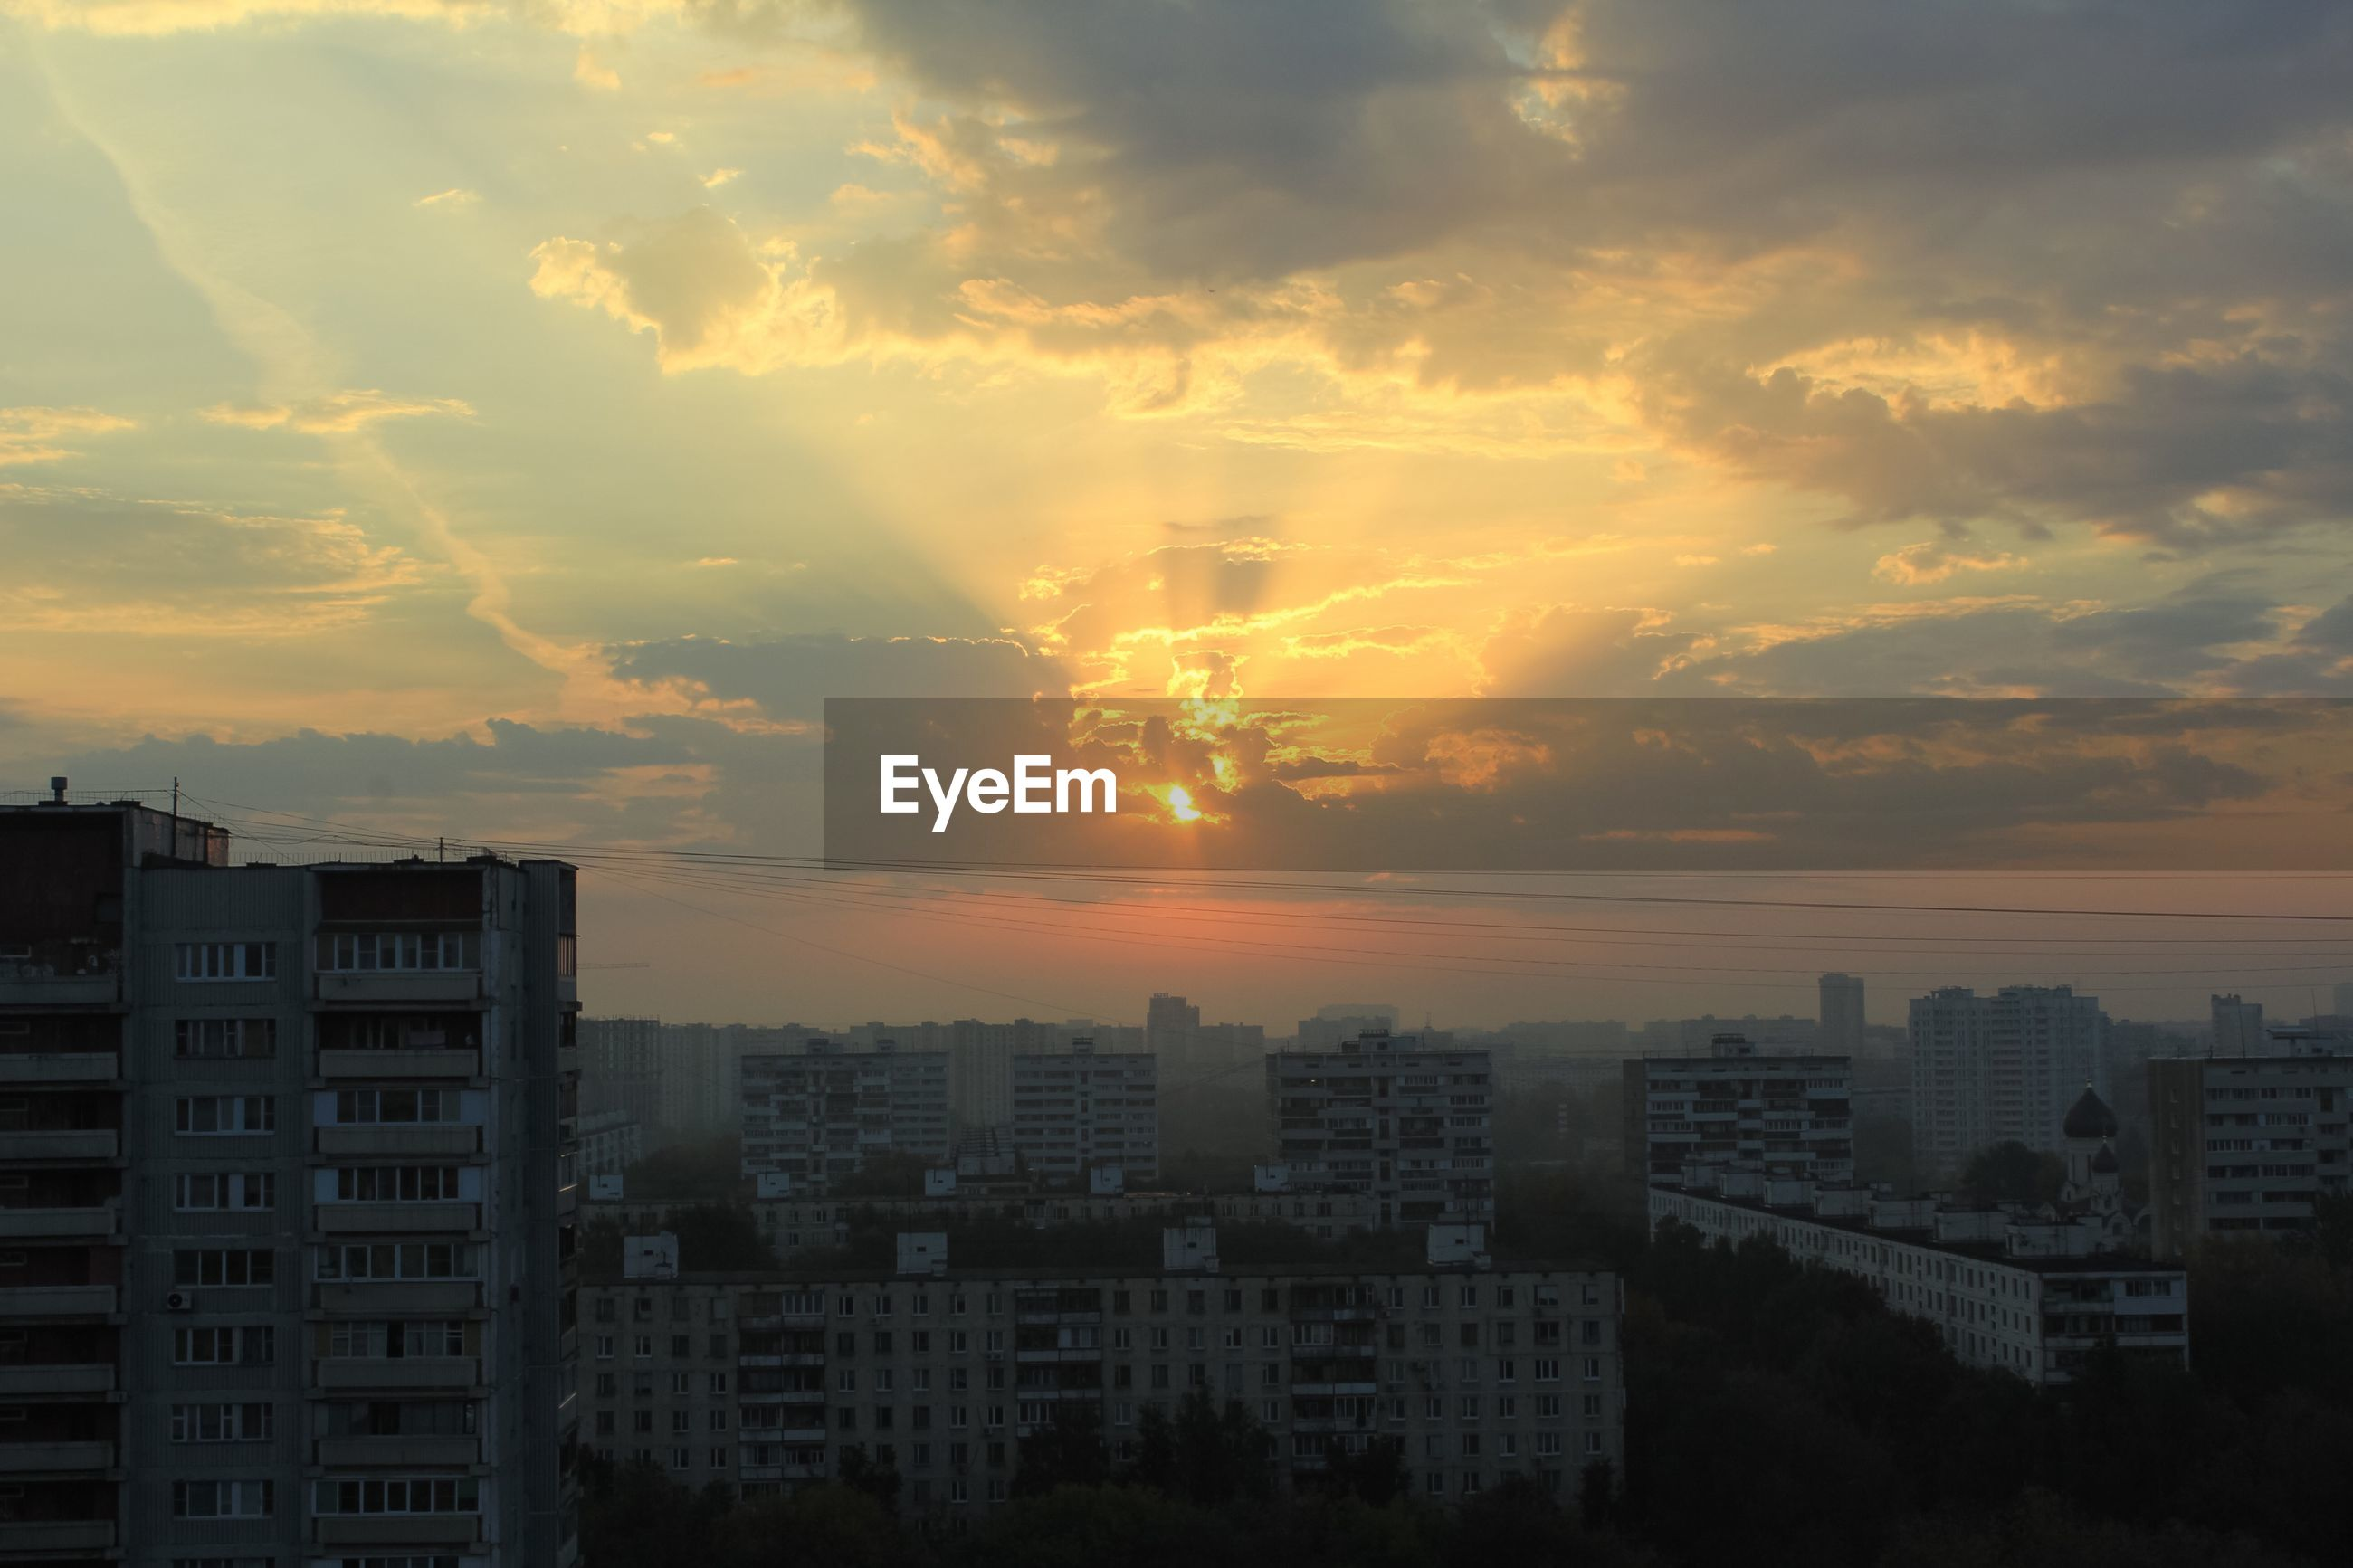 HIGH ANGLE VIEW OF BUILDINGS AGAINST SKY AT SUNSET